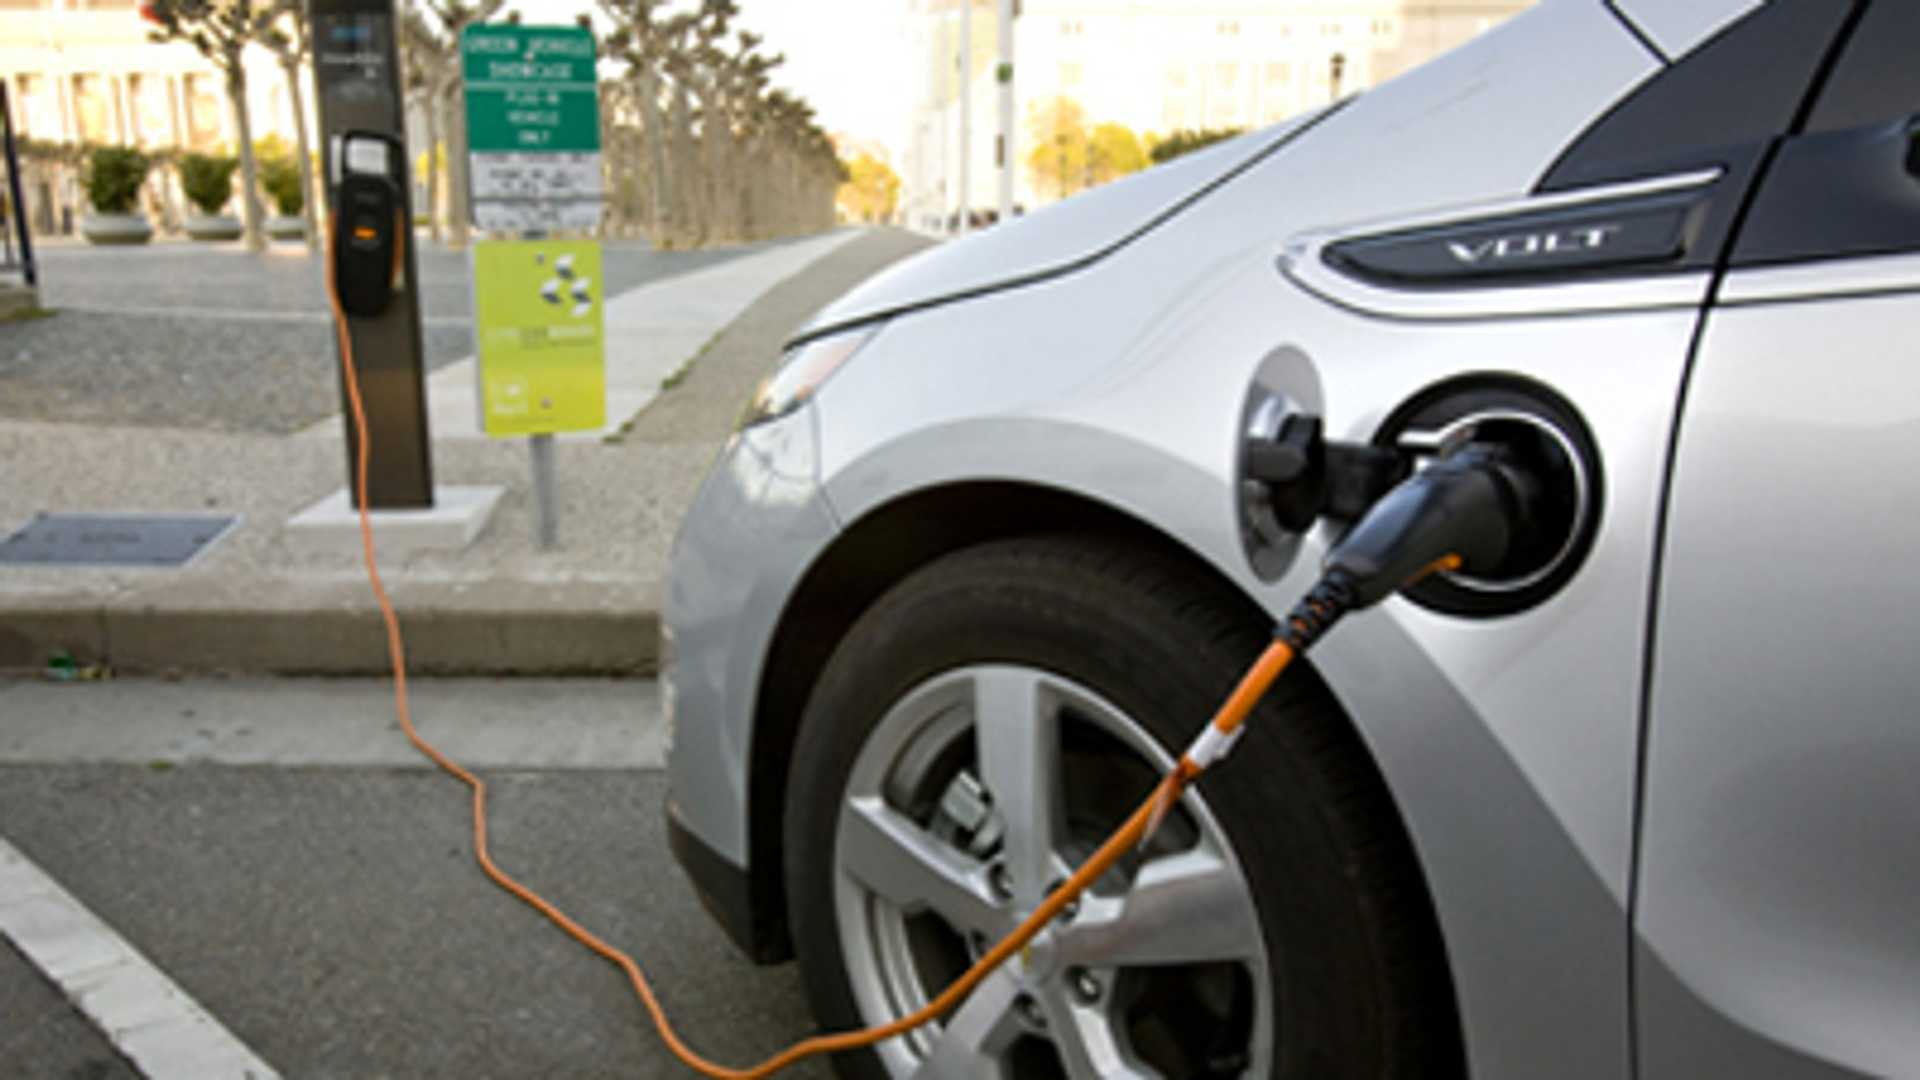 At 2 Per Hour Level Charging Stations In Venice Florida Come Under Fire For Being Way Too Expensive